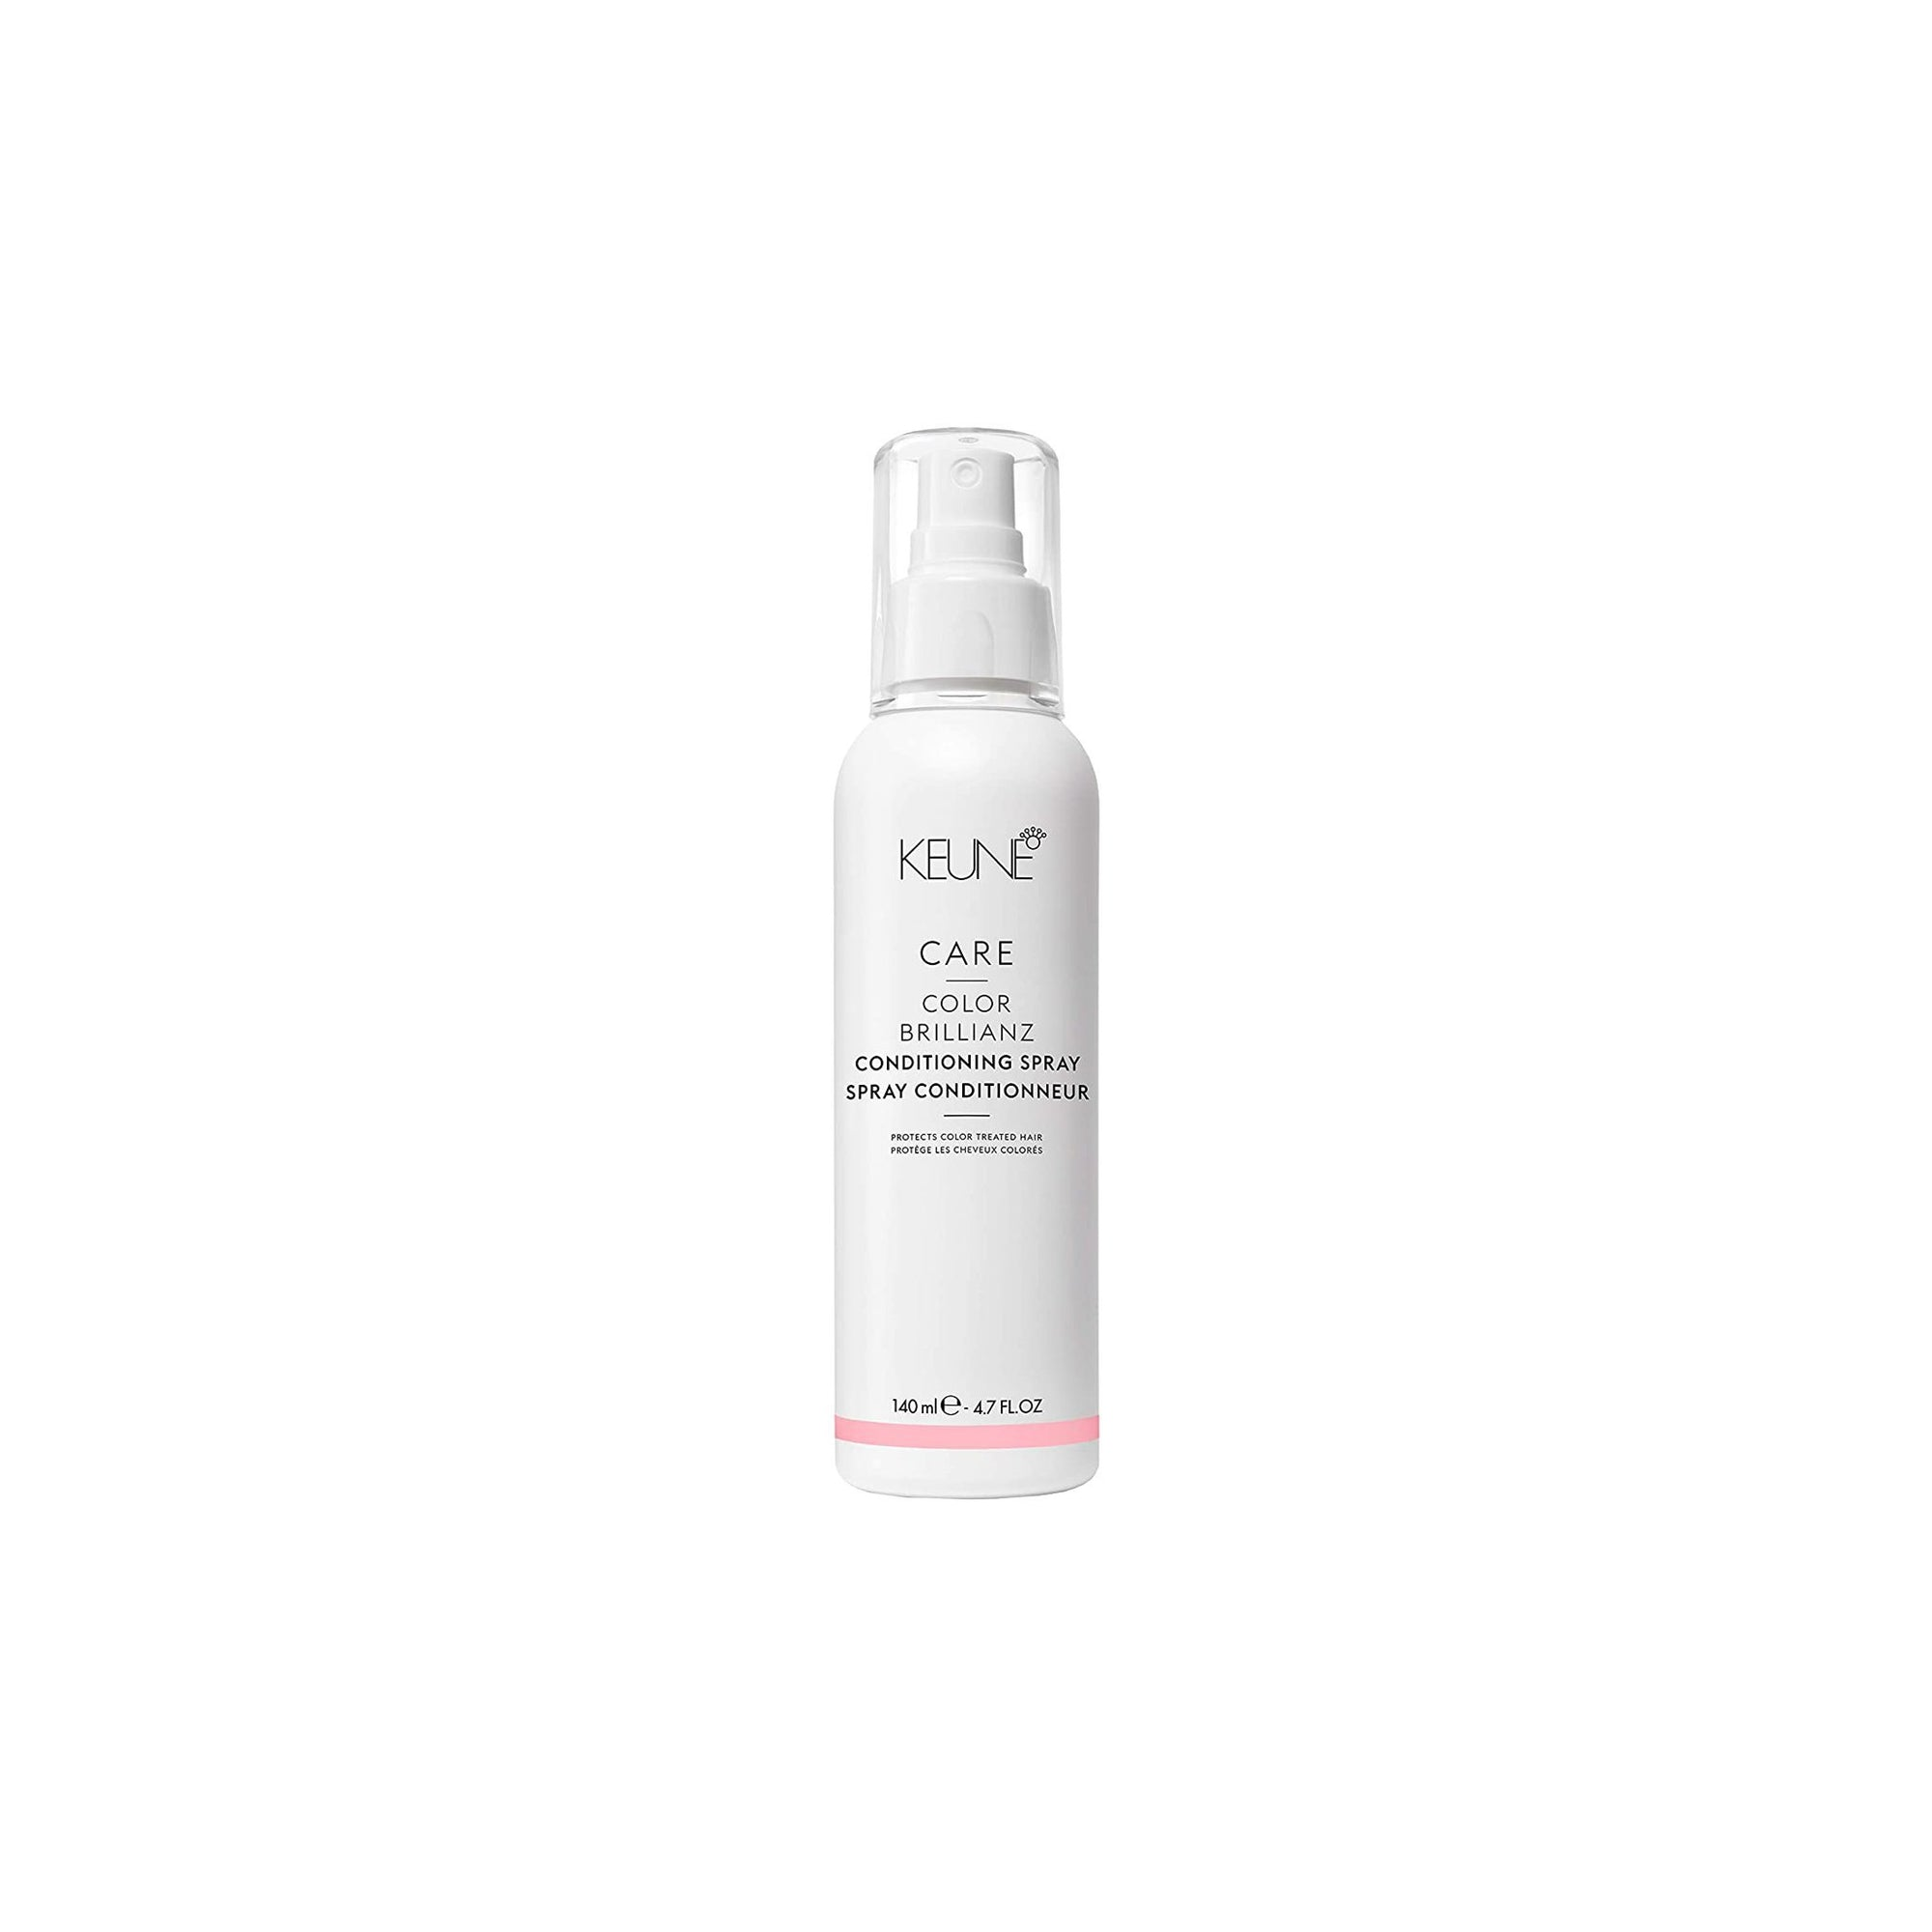 Keune Color Brillianz Conditioning Spray 140ml